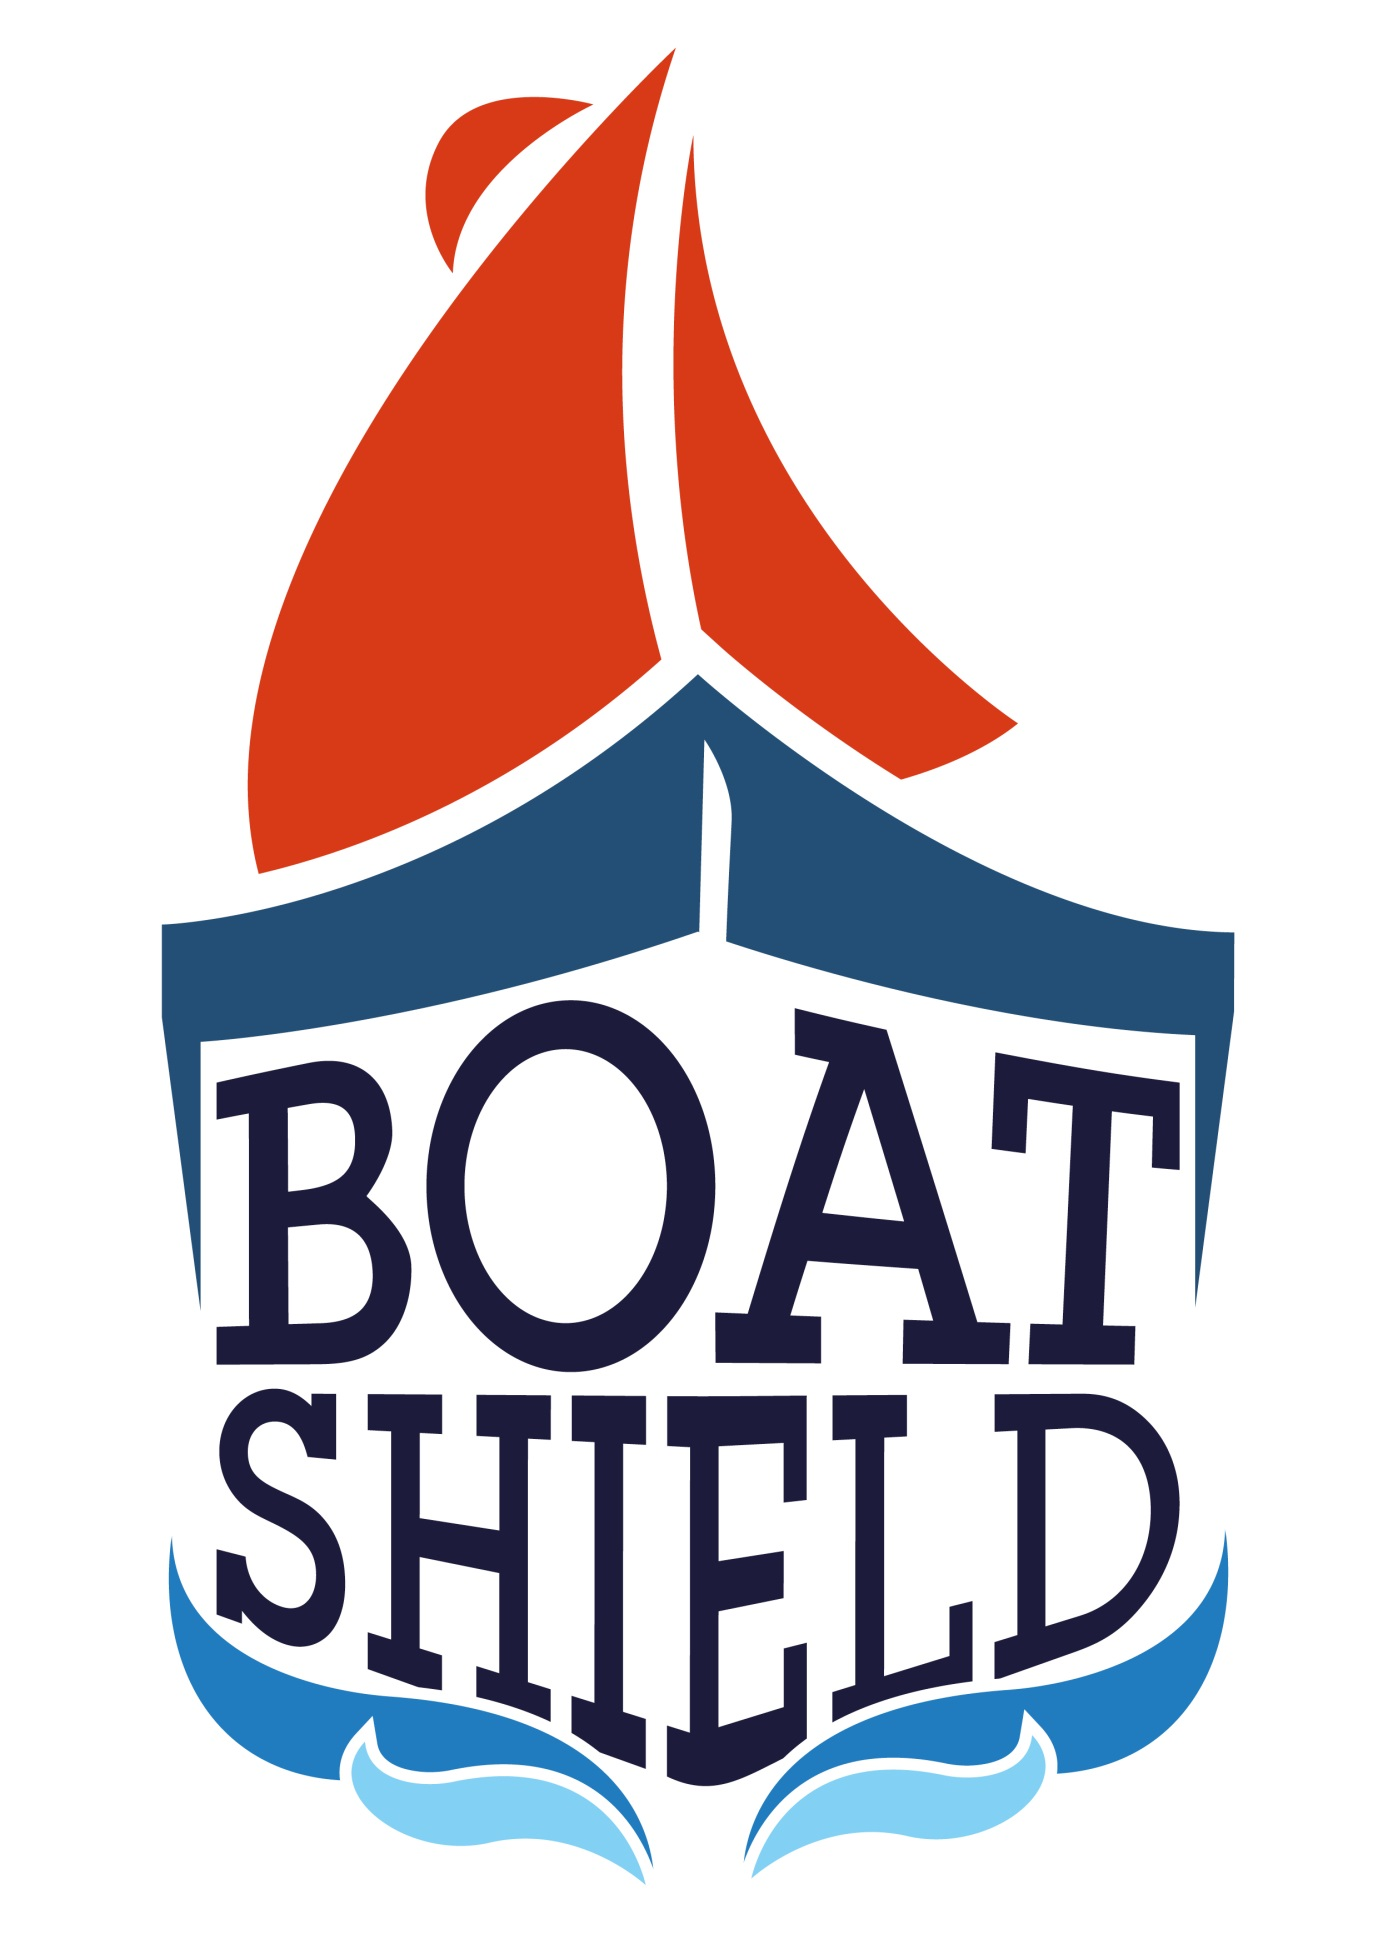 Boat Shield